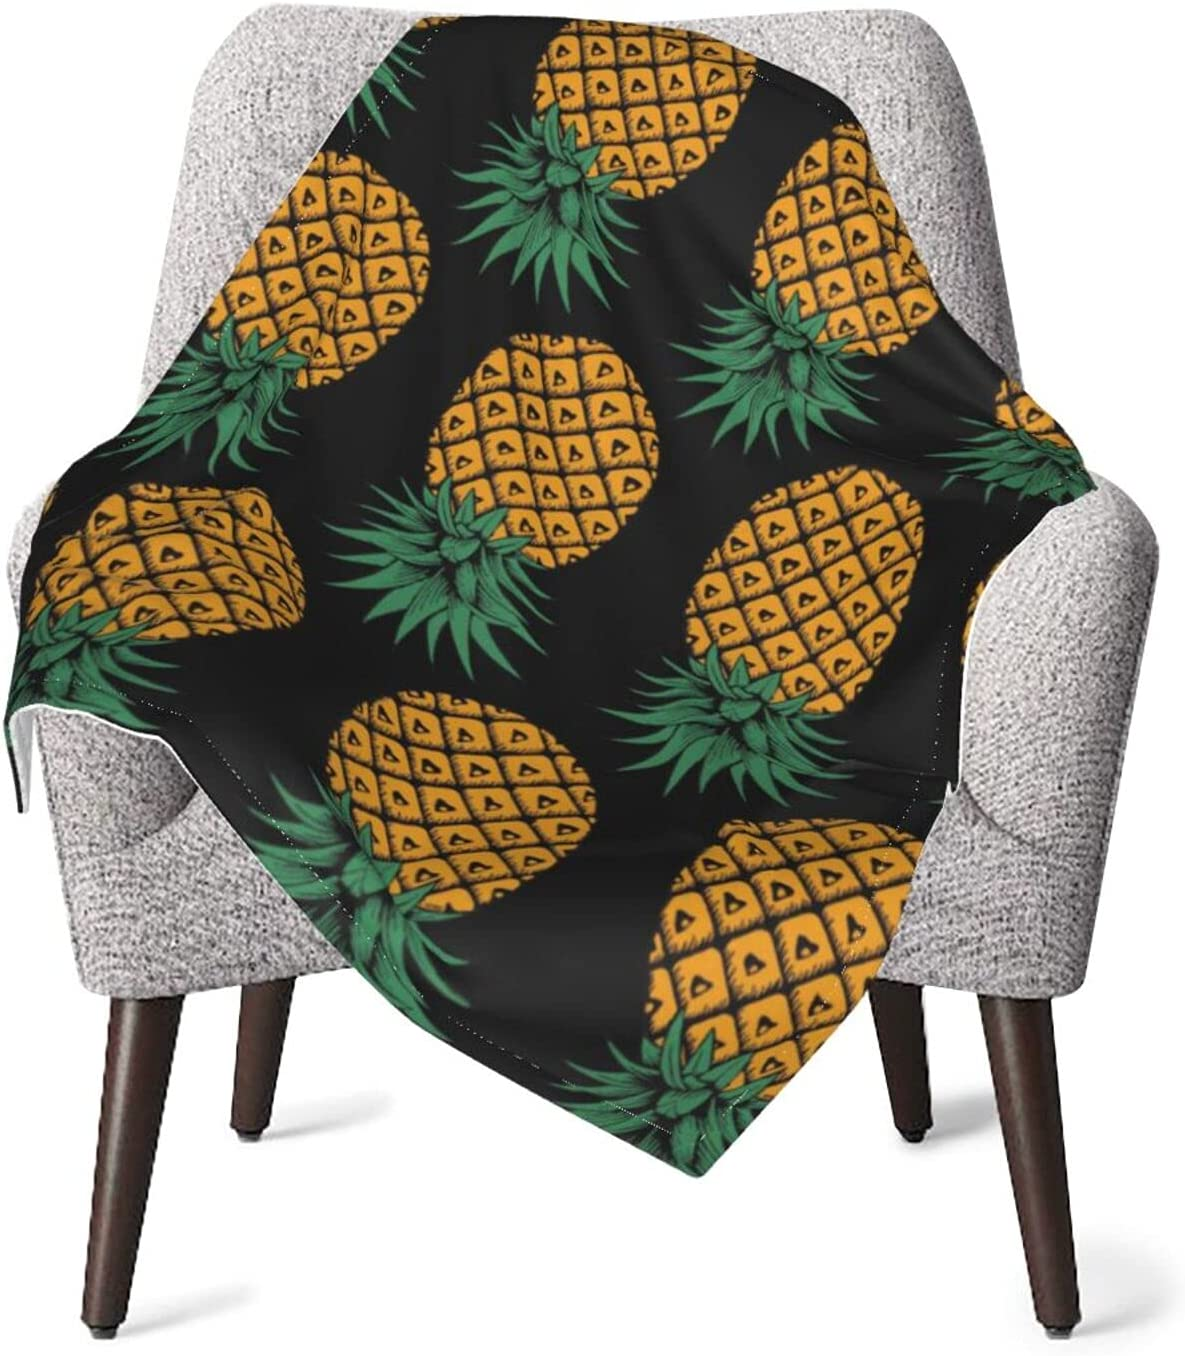 JZDACH Unisex 2021 autumn and winter new Max 72% OFF Baby Receiving Upside Inf Blankets Pineapple Down